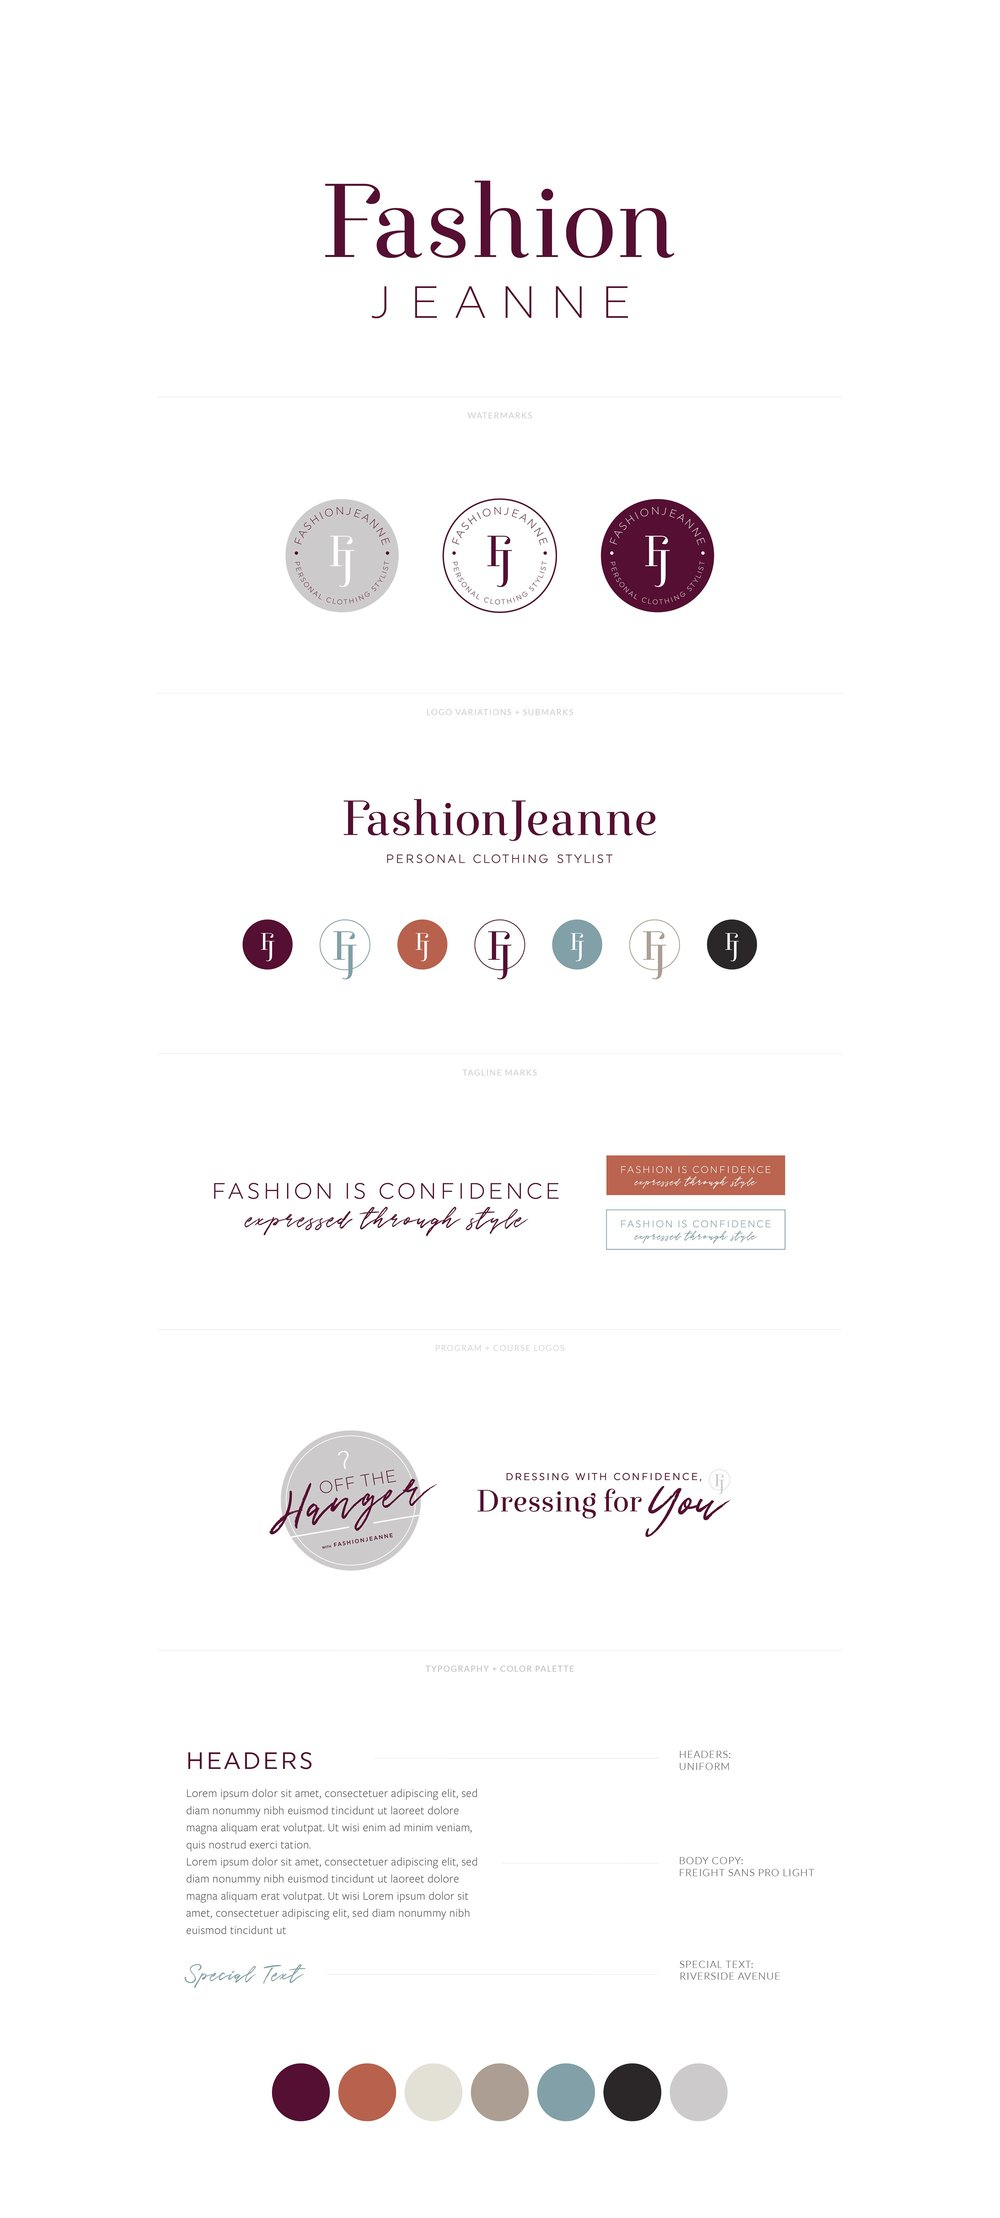 FashionJeanne, Personal Clothing Stylist | Confident, Modern, Timeless Logo, Watermark, Favicon, Tagline, YouTube Channel Logo, Course Logo, Font Styling, Color Palette | Branding by AllieMarie Design